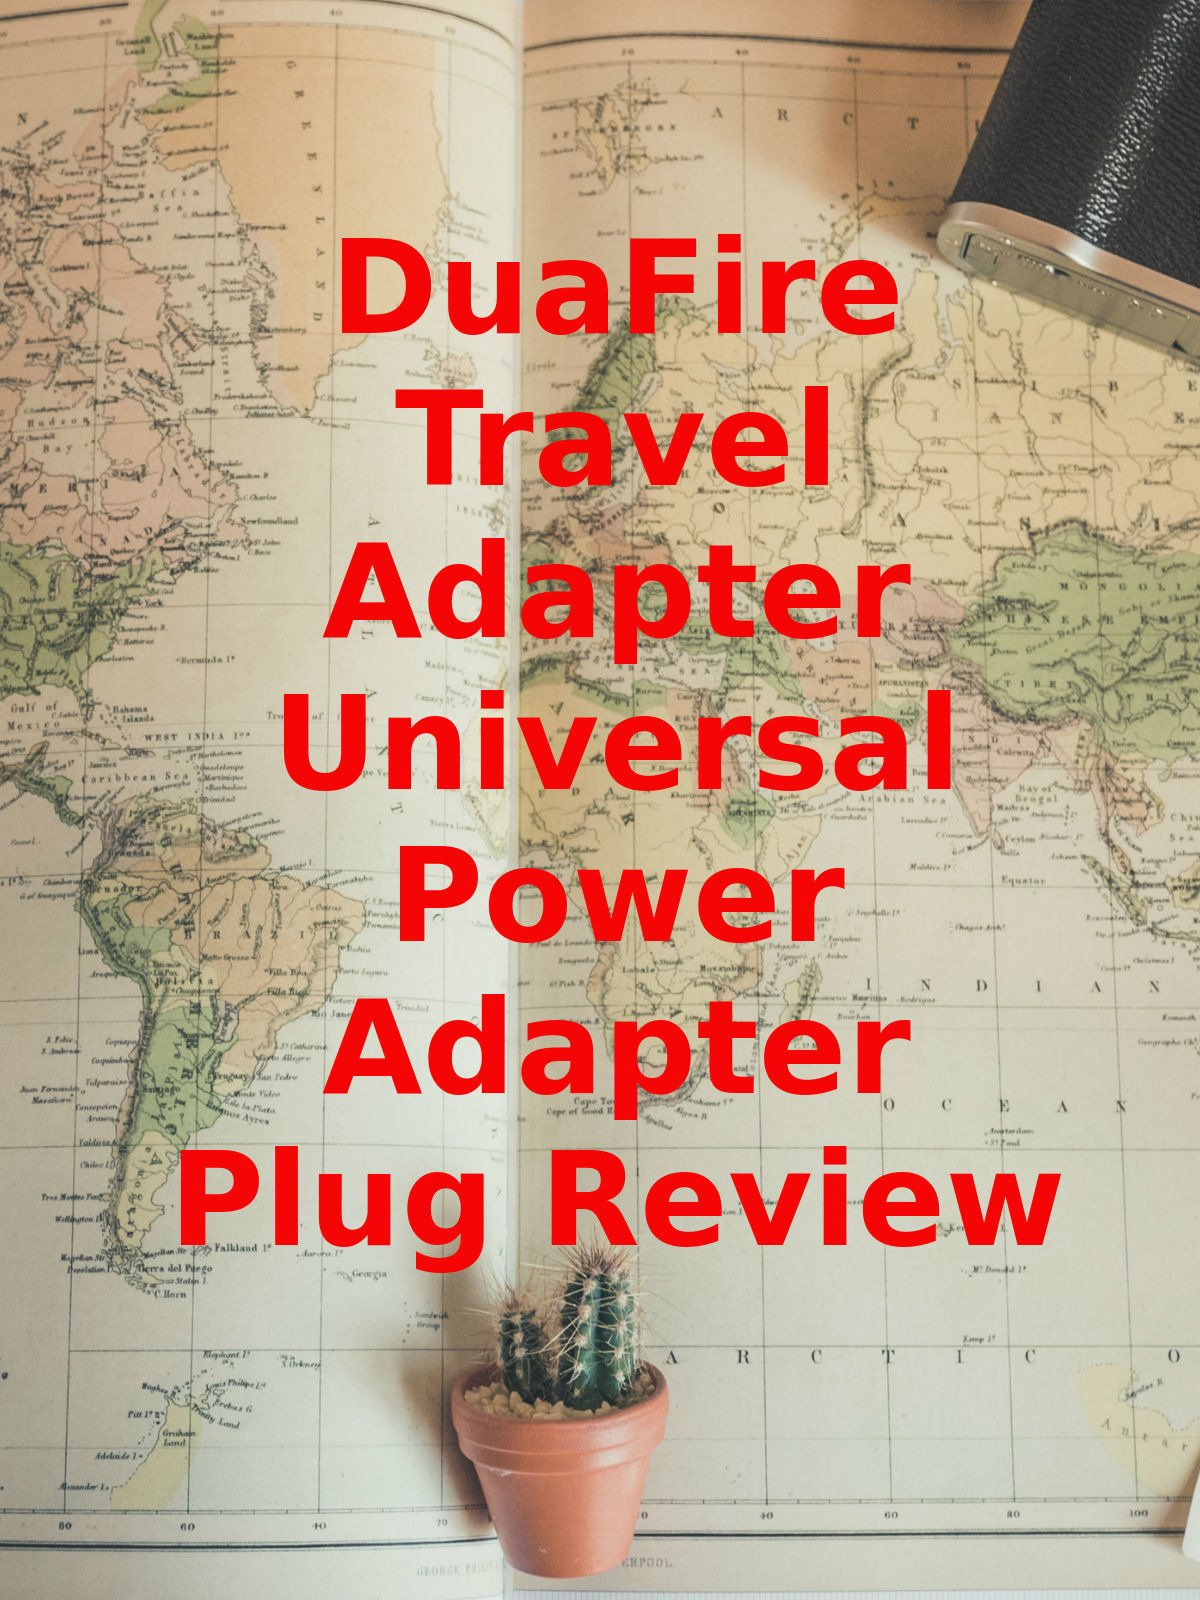 Review: DuaFire Travel Adapter Universal Power Adapter Plug Review